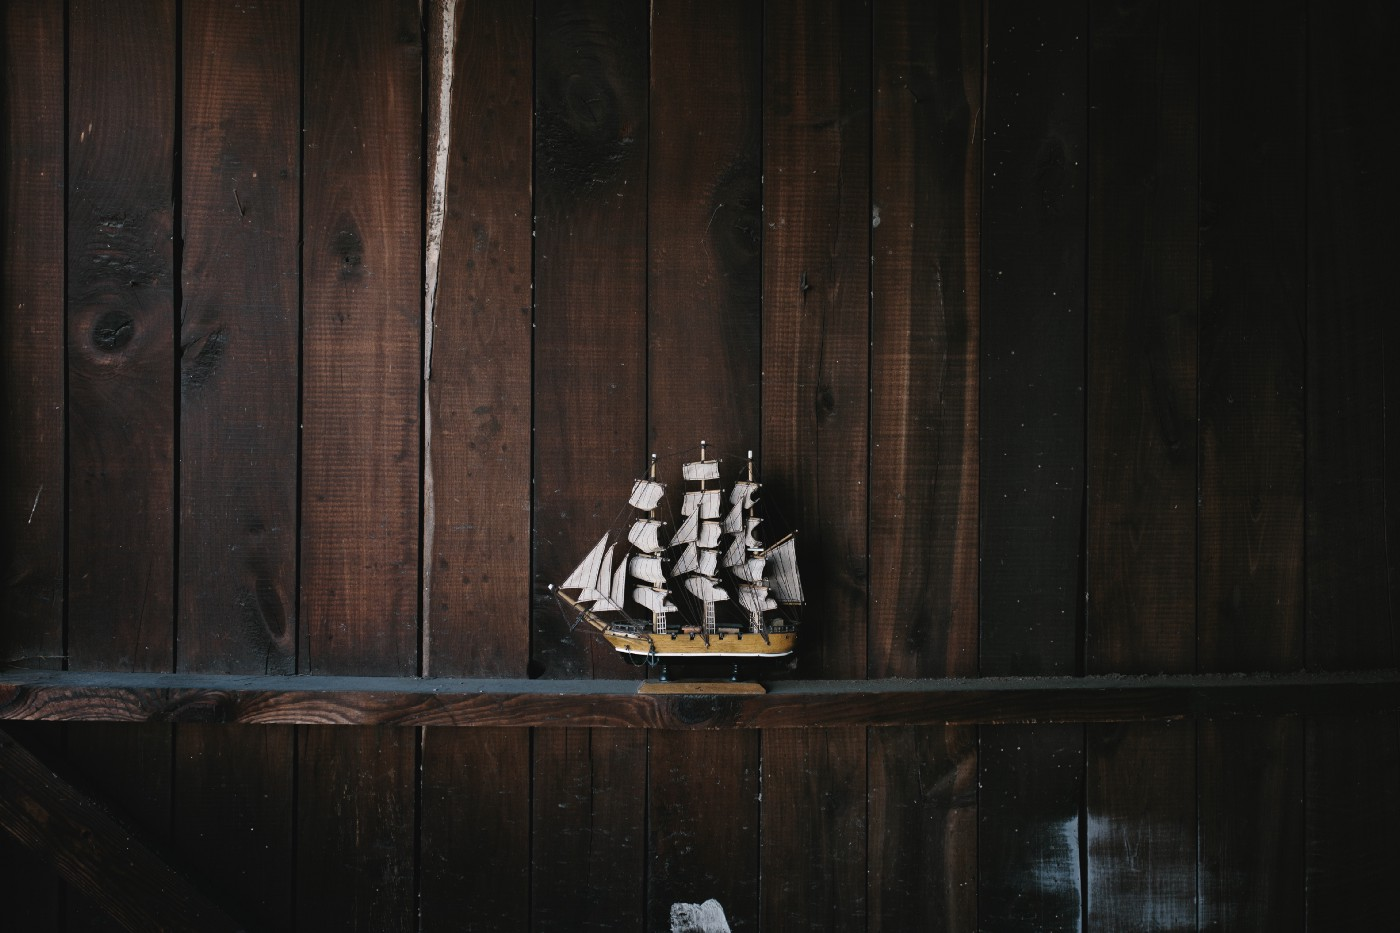 Toy sailboat on a wooden shelf